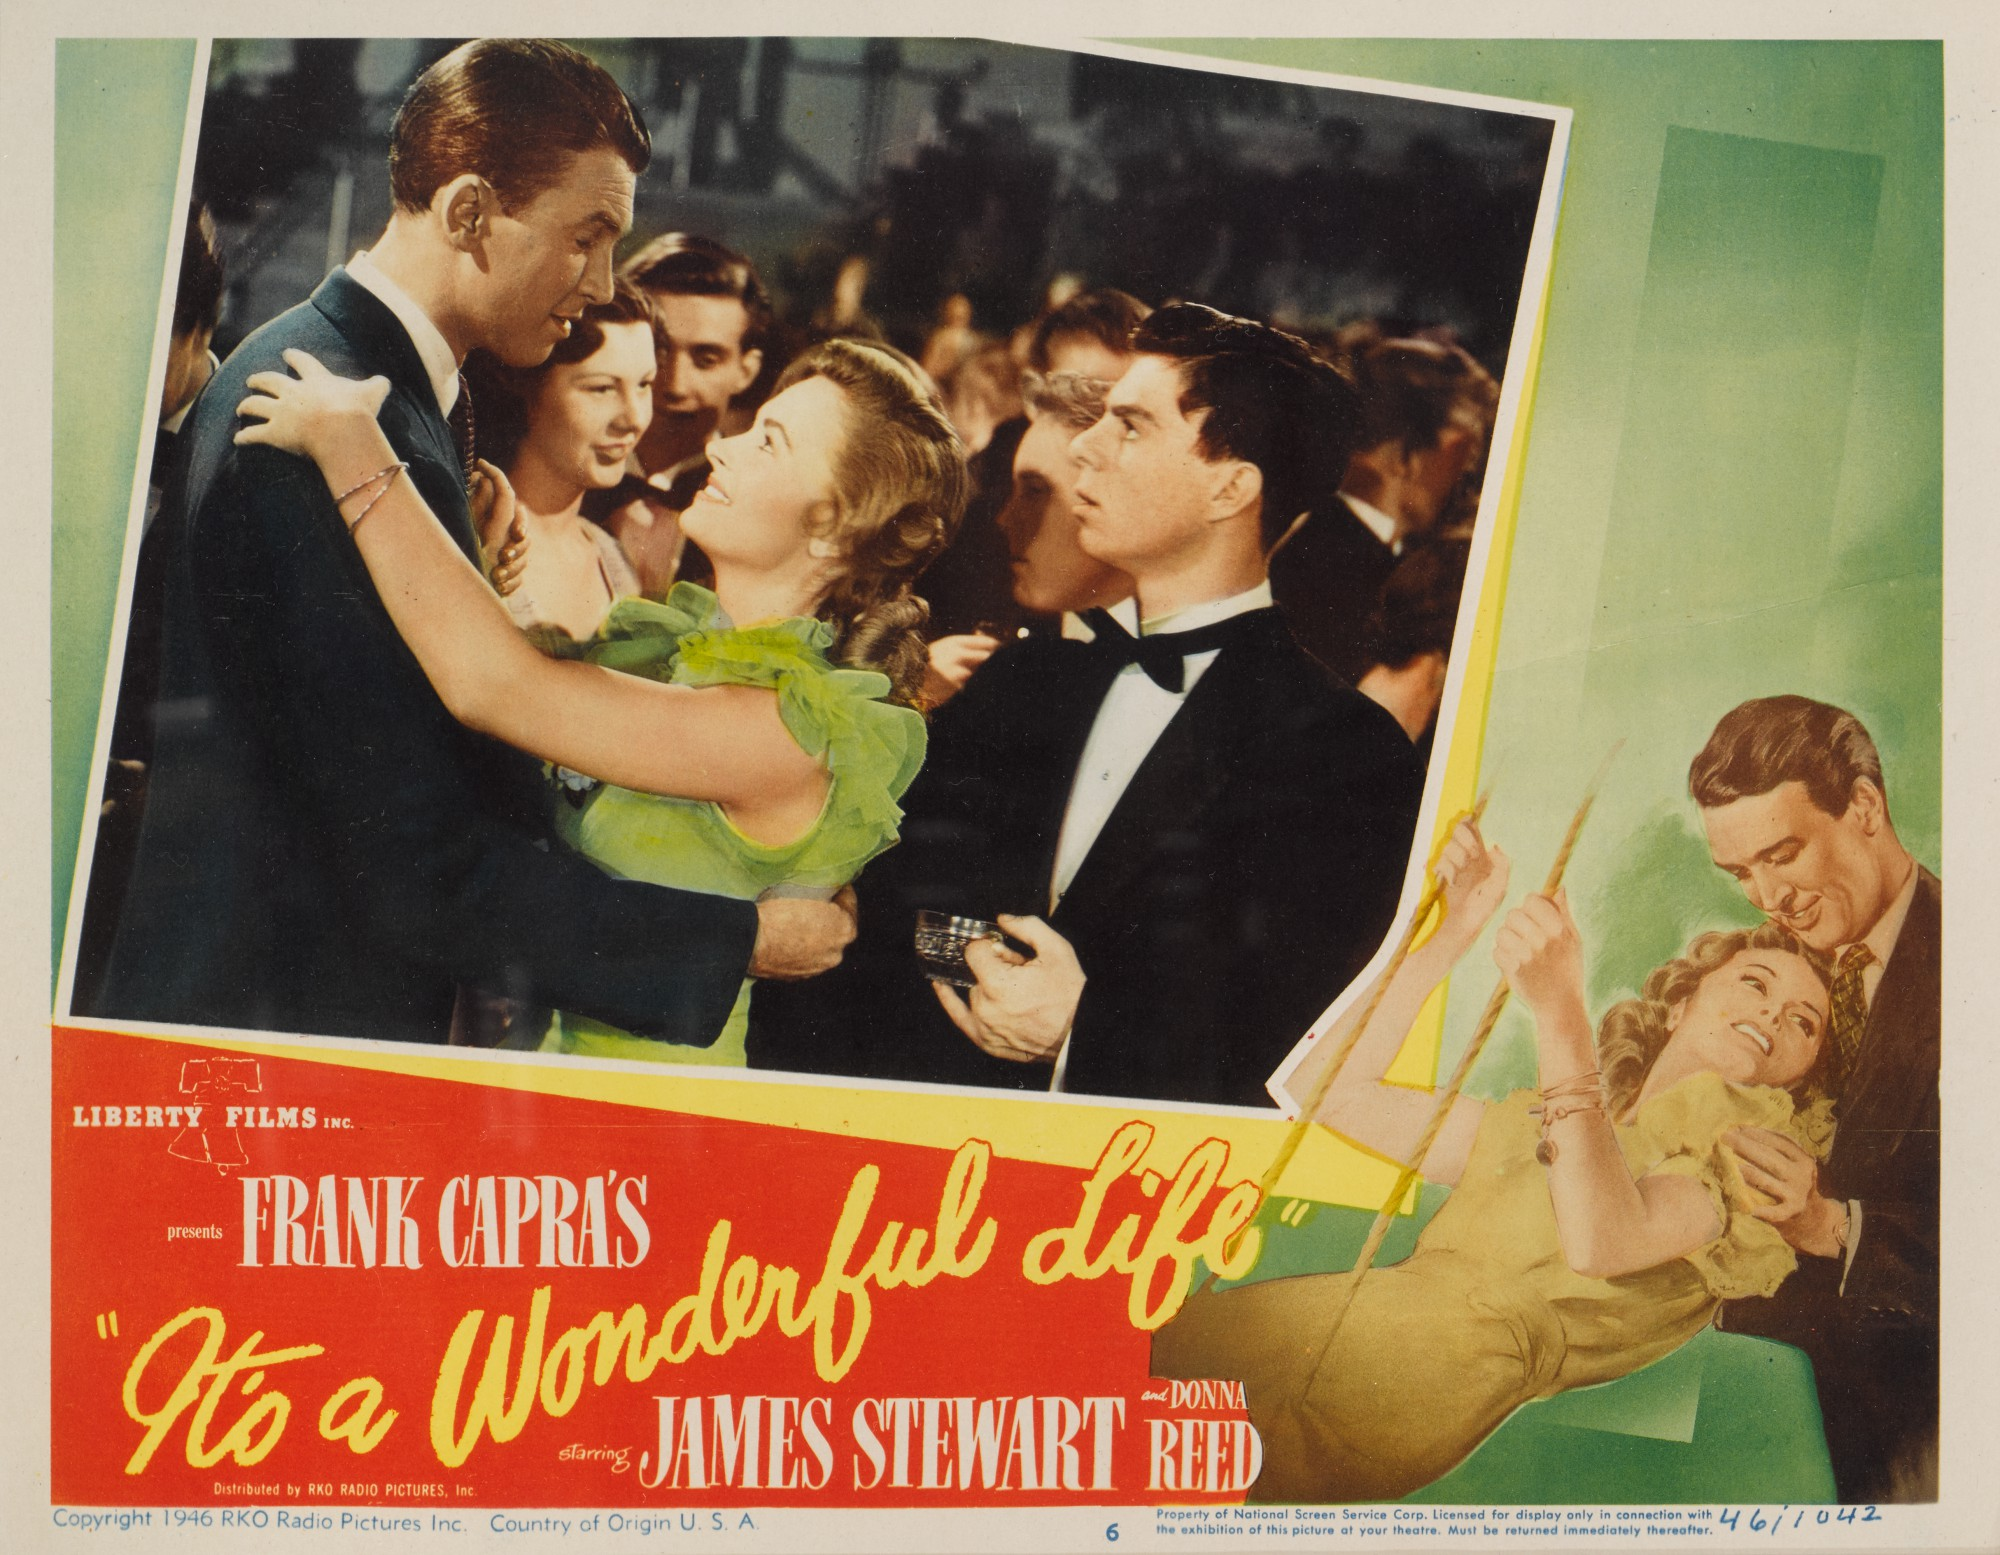 IT'S A WONDERFUL LIFE (1946) LOBBY CARD, US